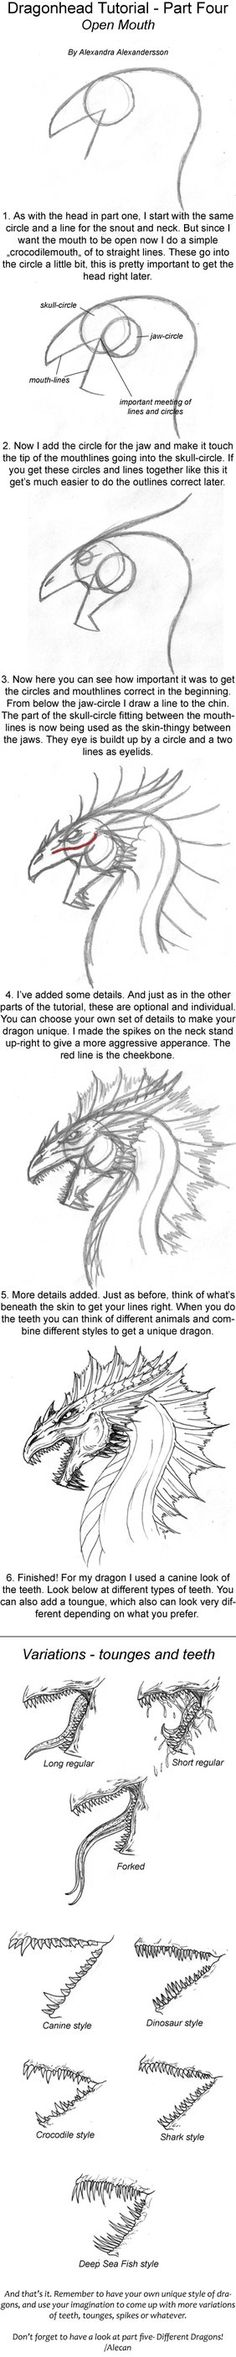 These are my tutorials. Hope you can get some help from these or at least some new perspectives on drawing dragons.